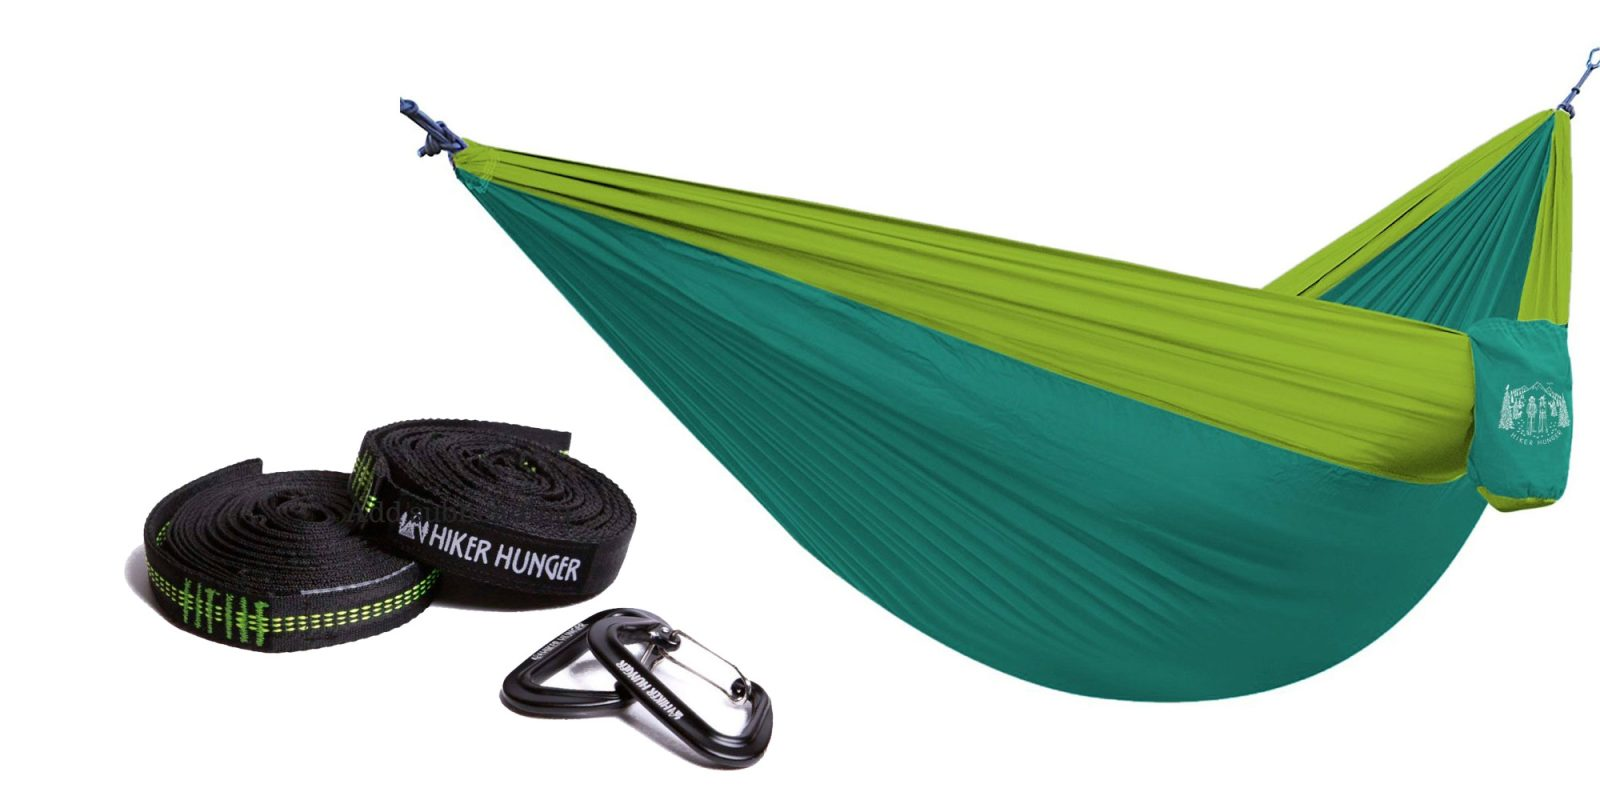 Spring is just around the corner, enjoy being outside again w/ this $21 hammock (Reg. $35)